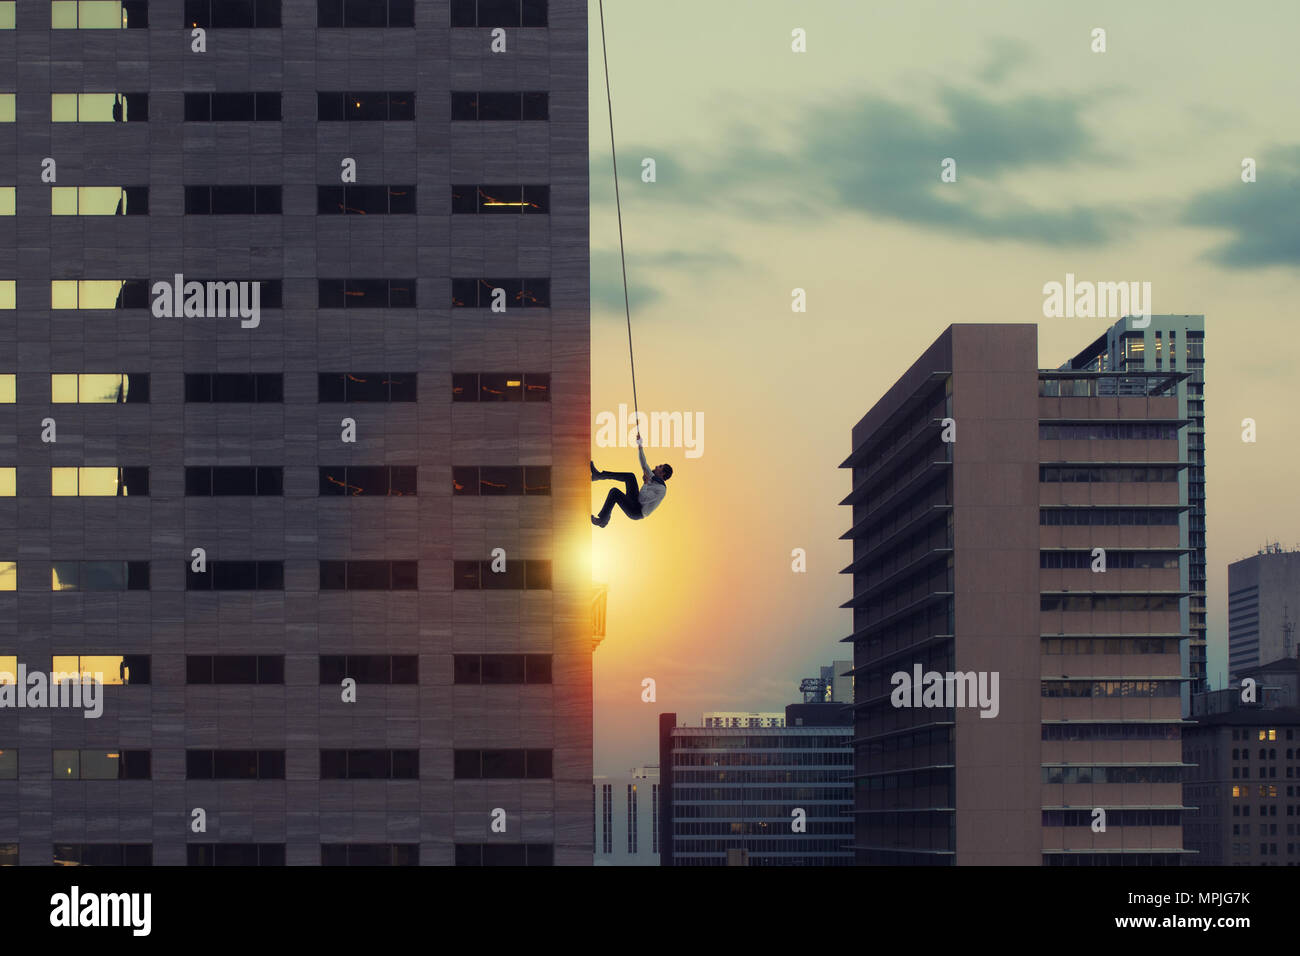 Businessman climb a skyscraper. Achievement business goal and difficult career concept - Stock Image